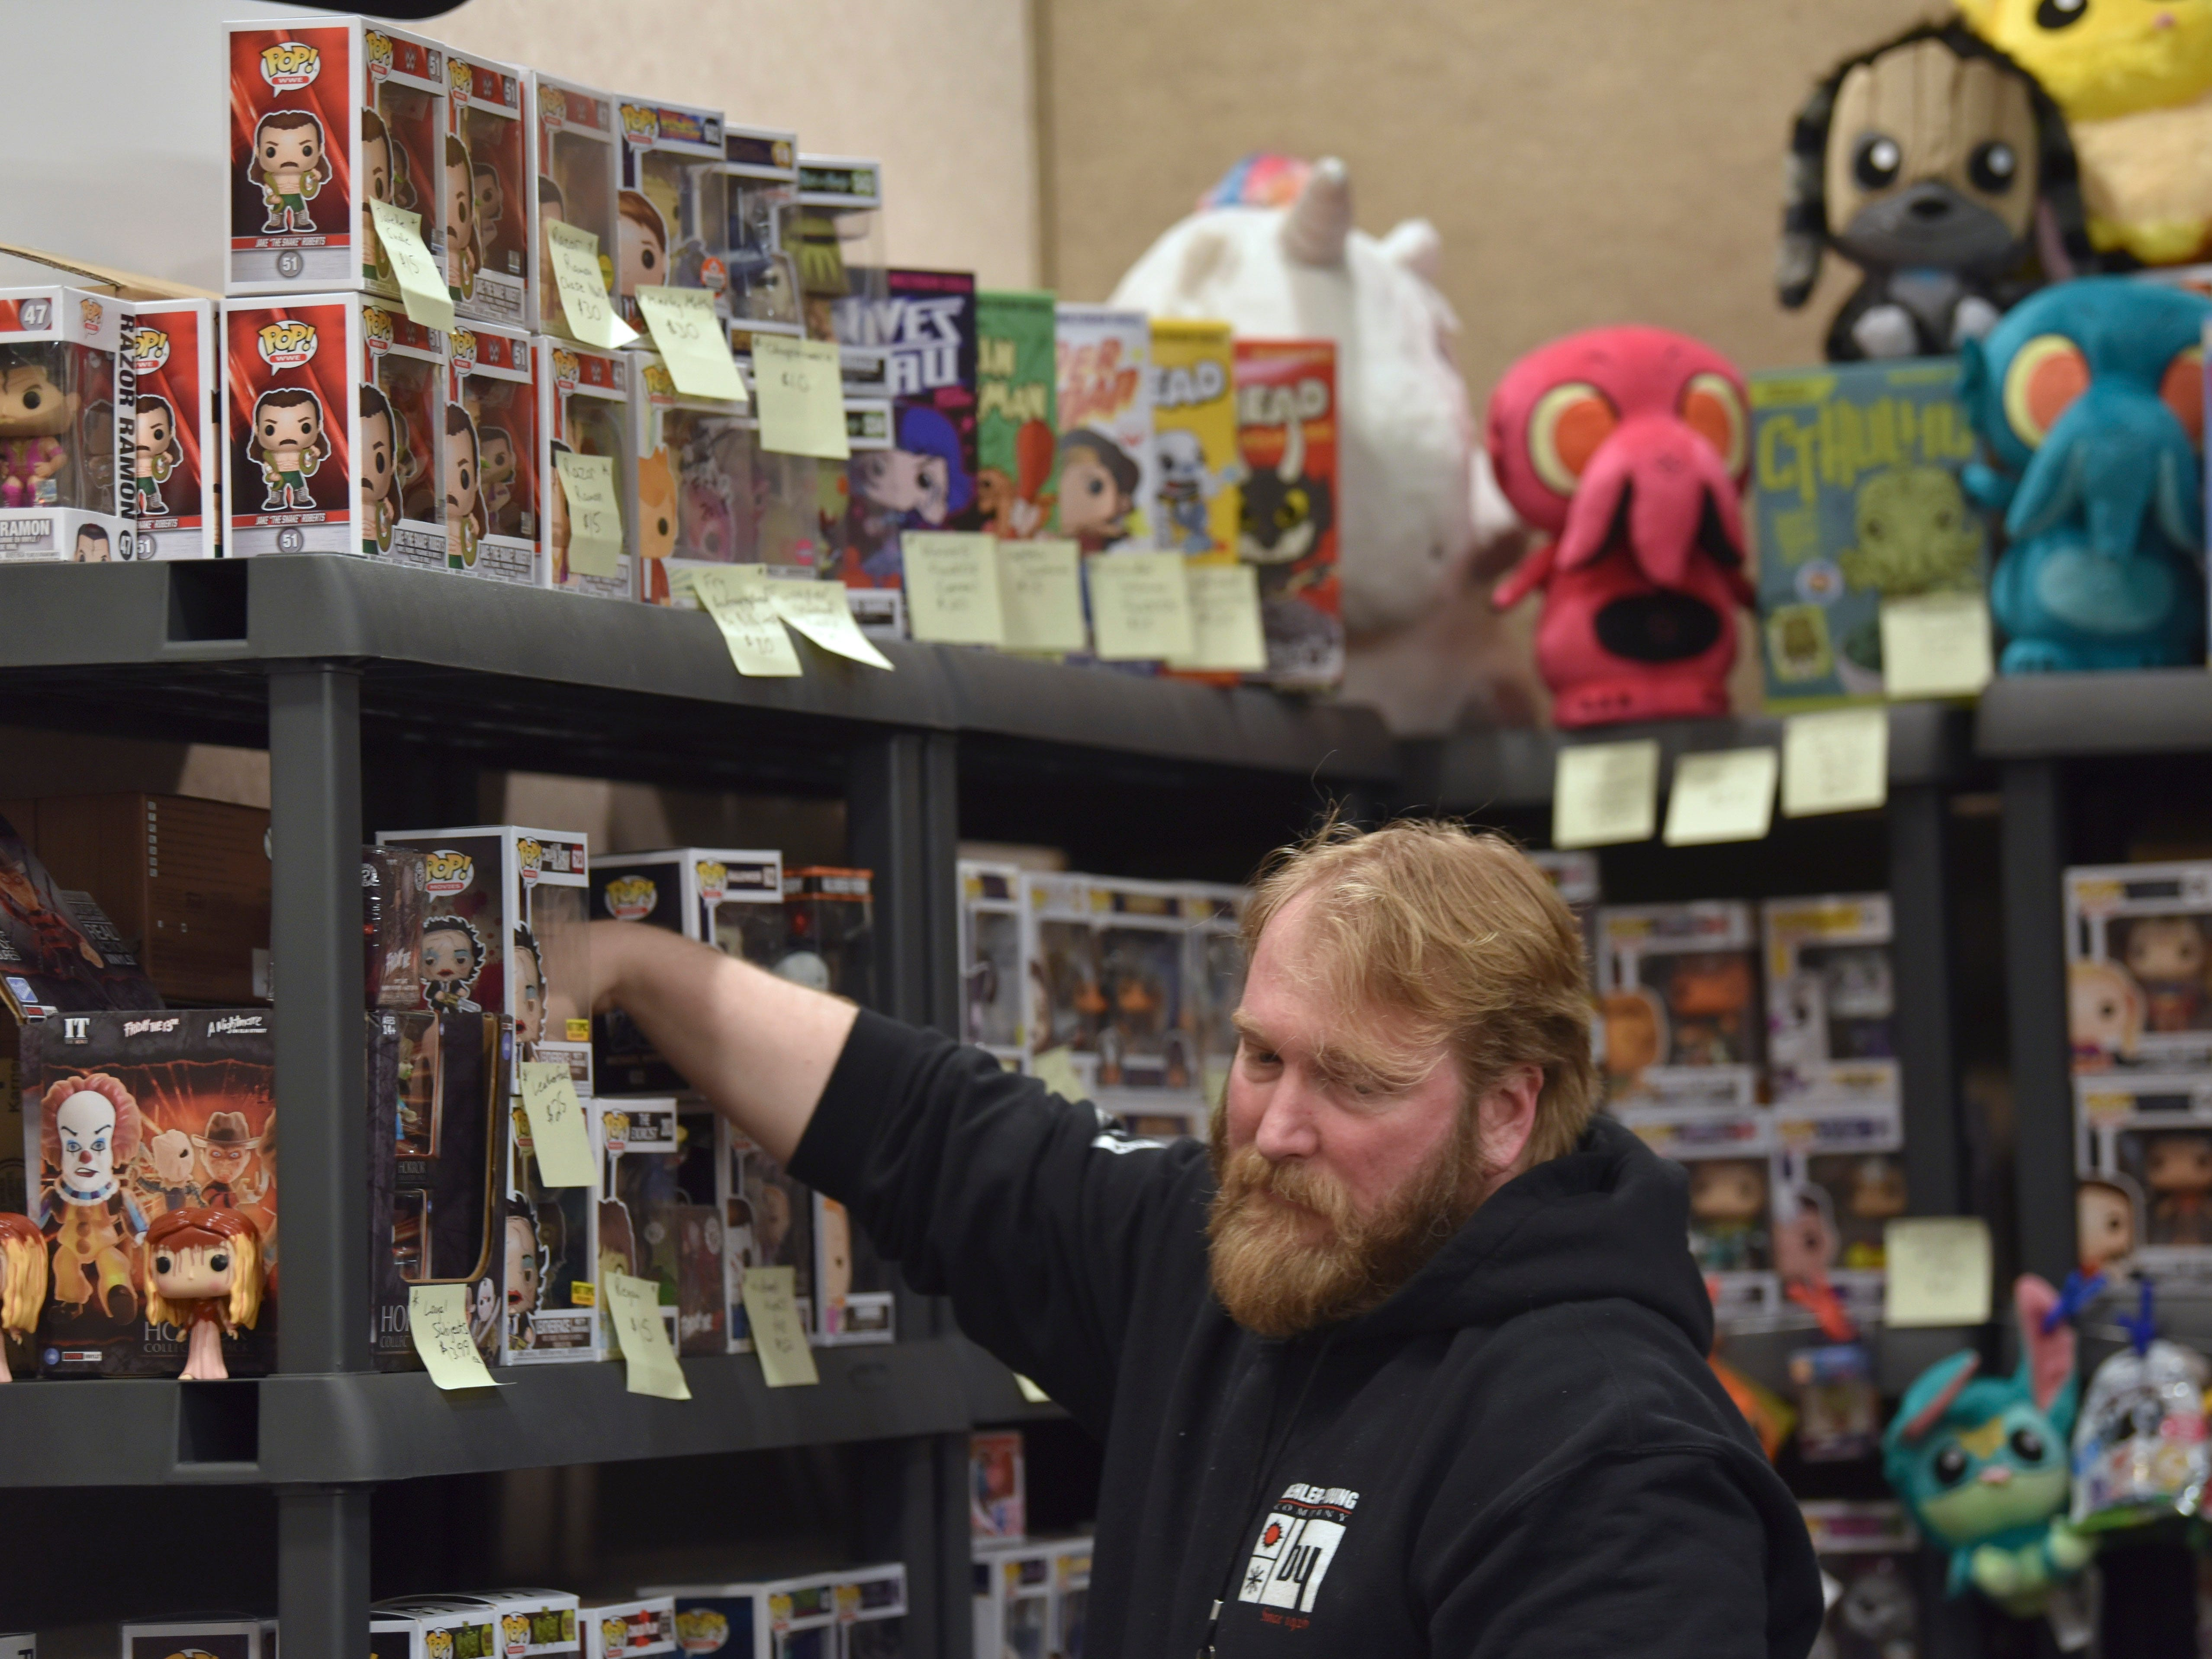 Throne of Toys employee Dane Wright, 42, of Westland, straightens out merchandise in the vendors area.